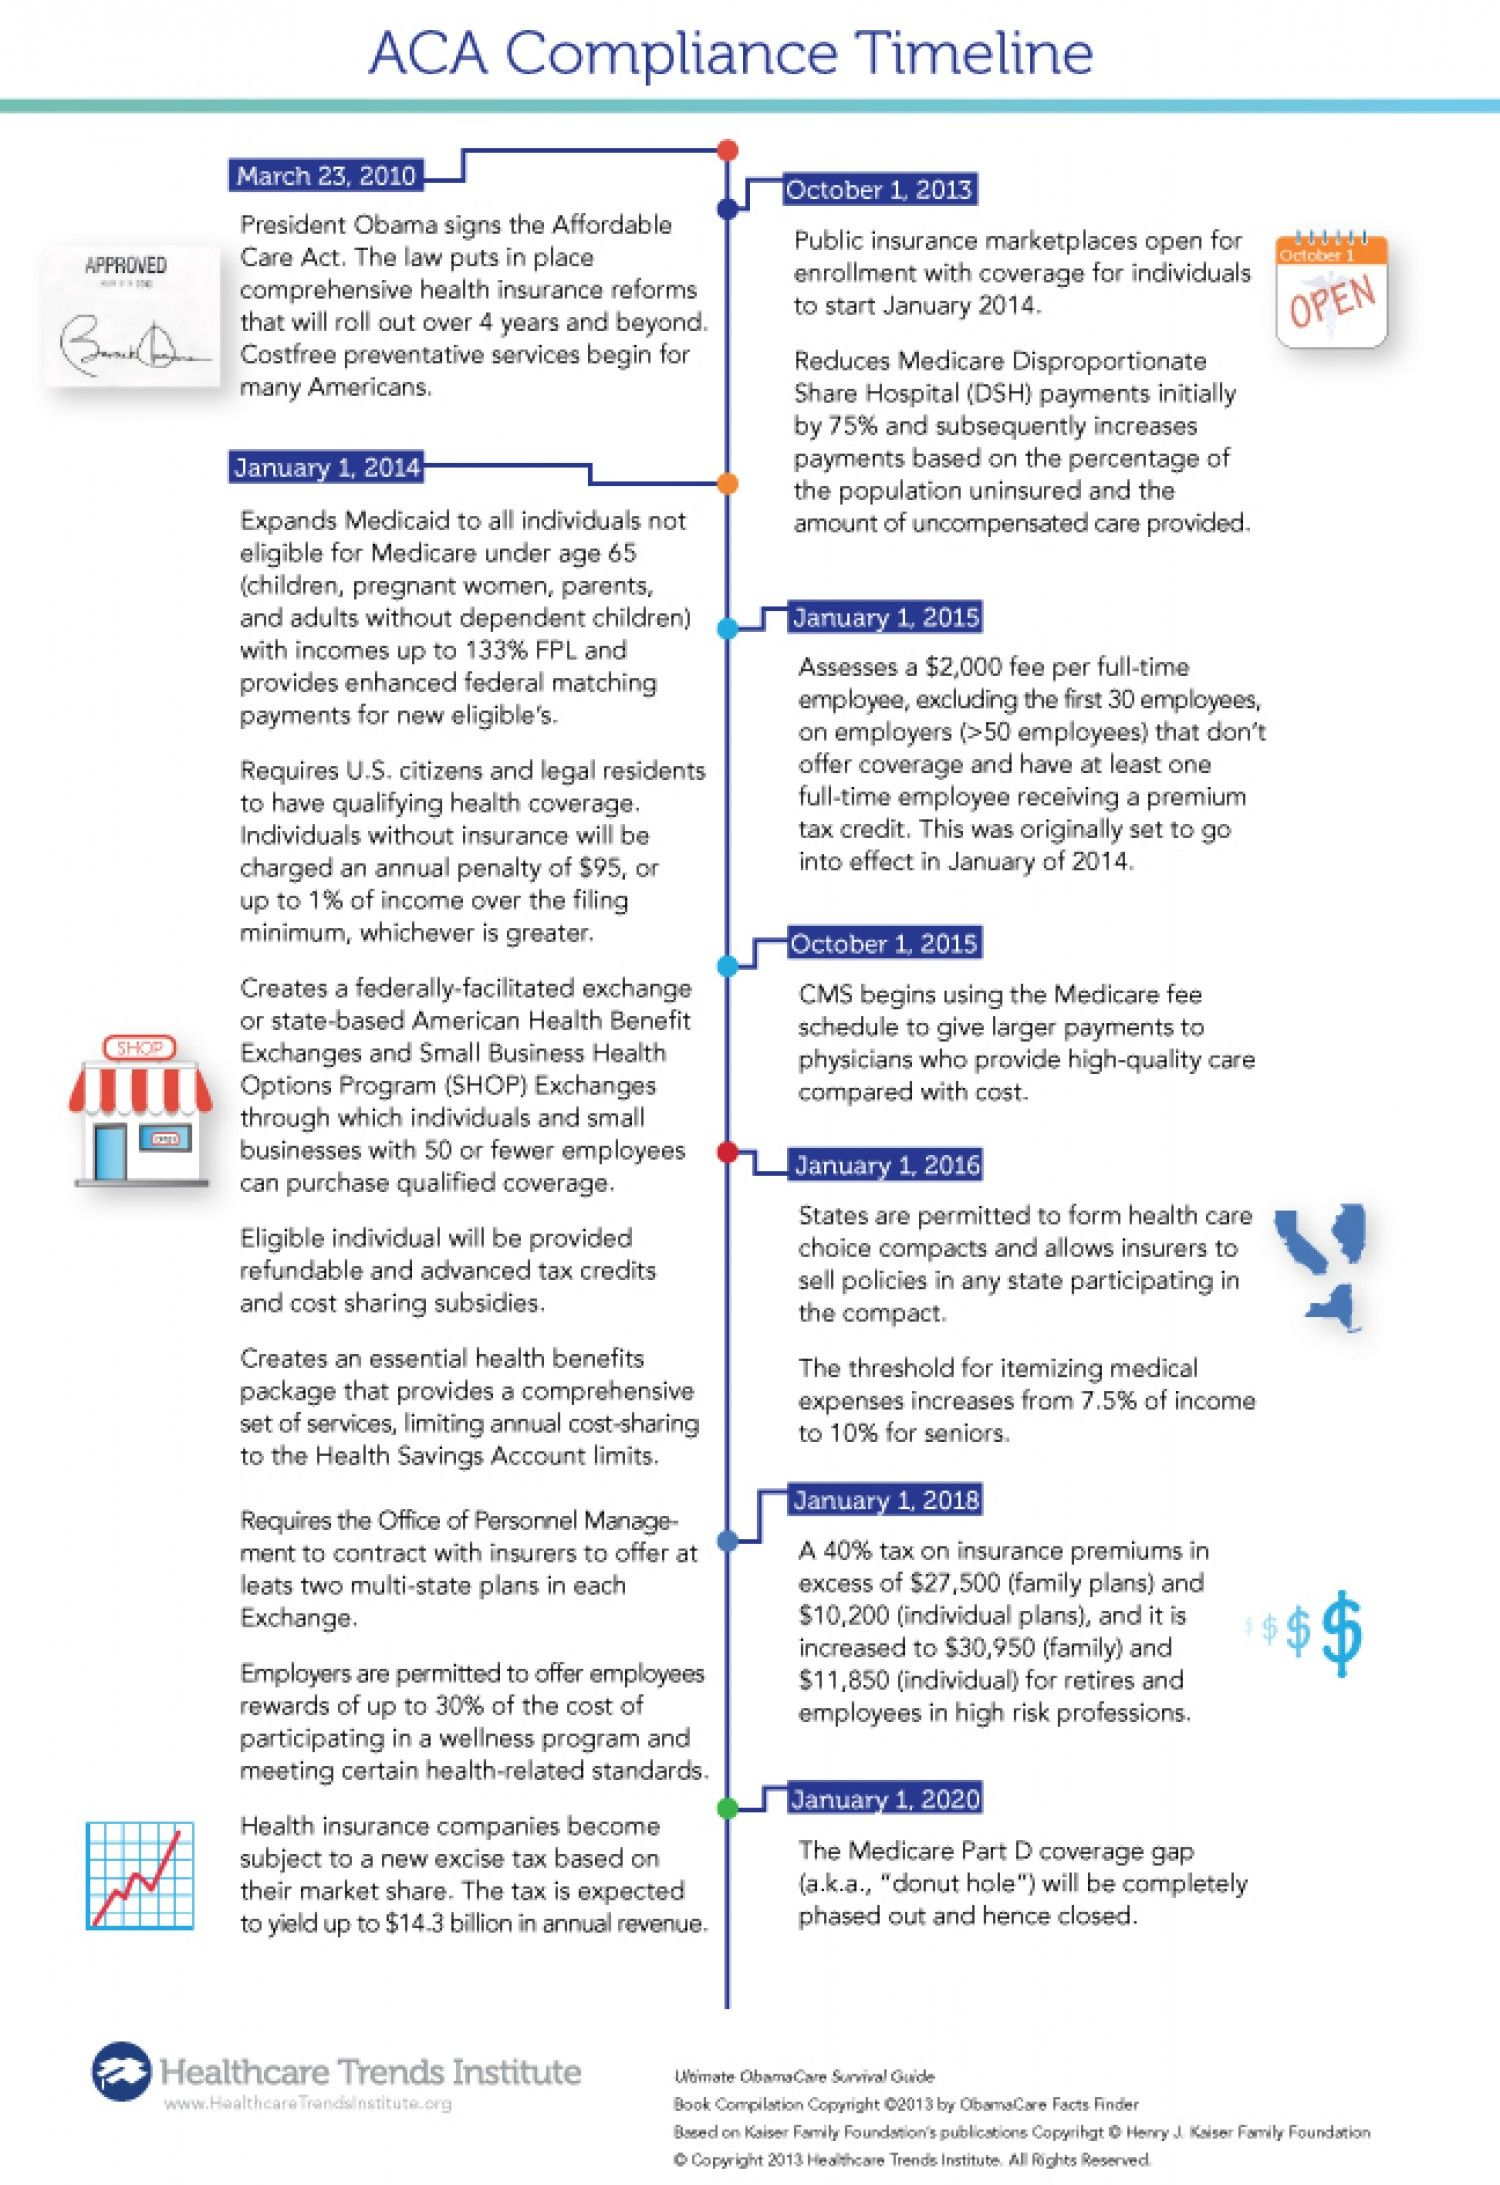 Aca Compliance Timeline Infographic Timeline Infographic